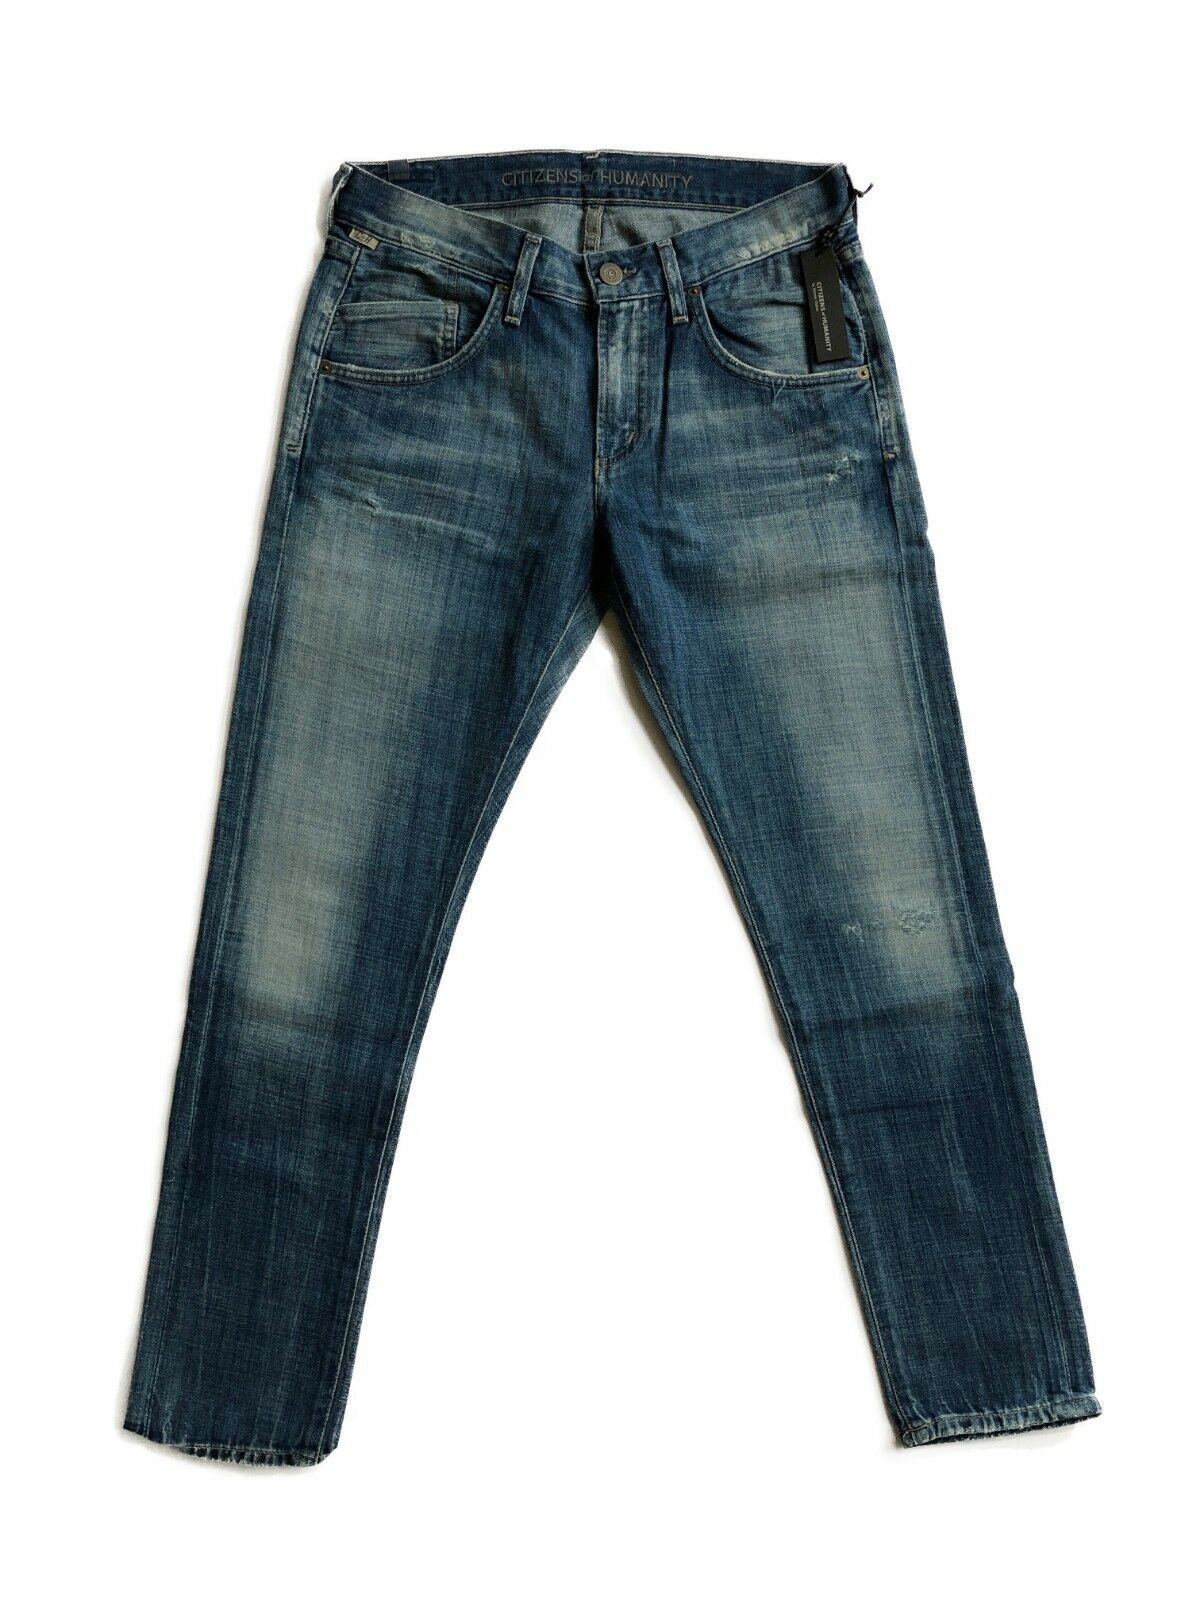 CITIZENS OF HUMANITY Cropped Lennox Slim Relaxed Jeans Circa bluee 24